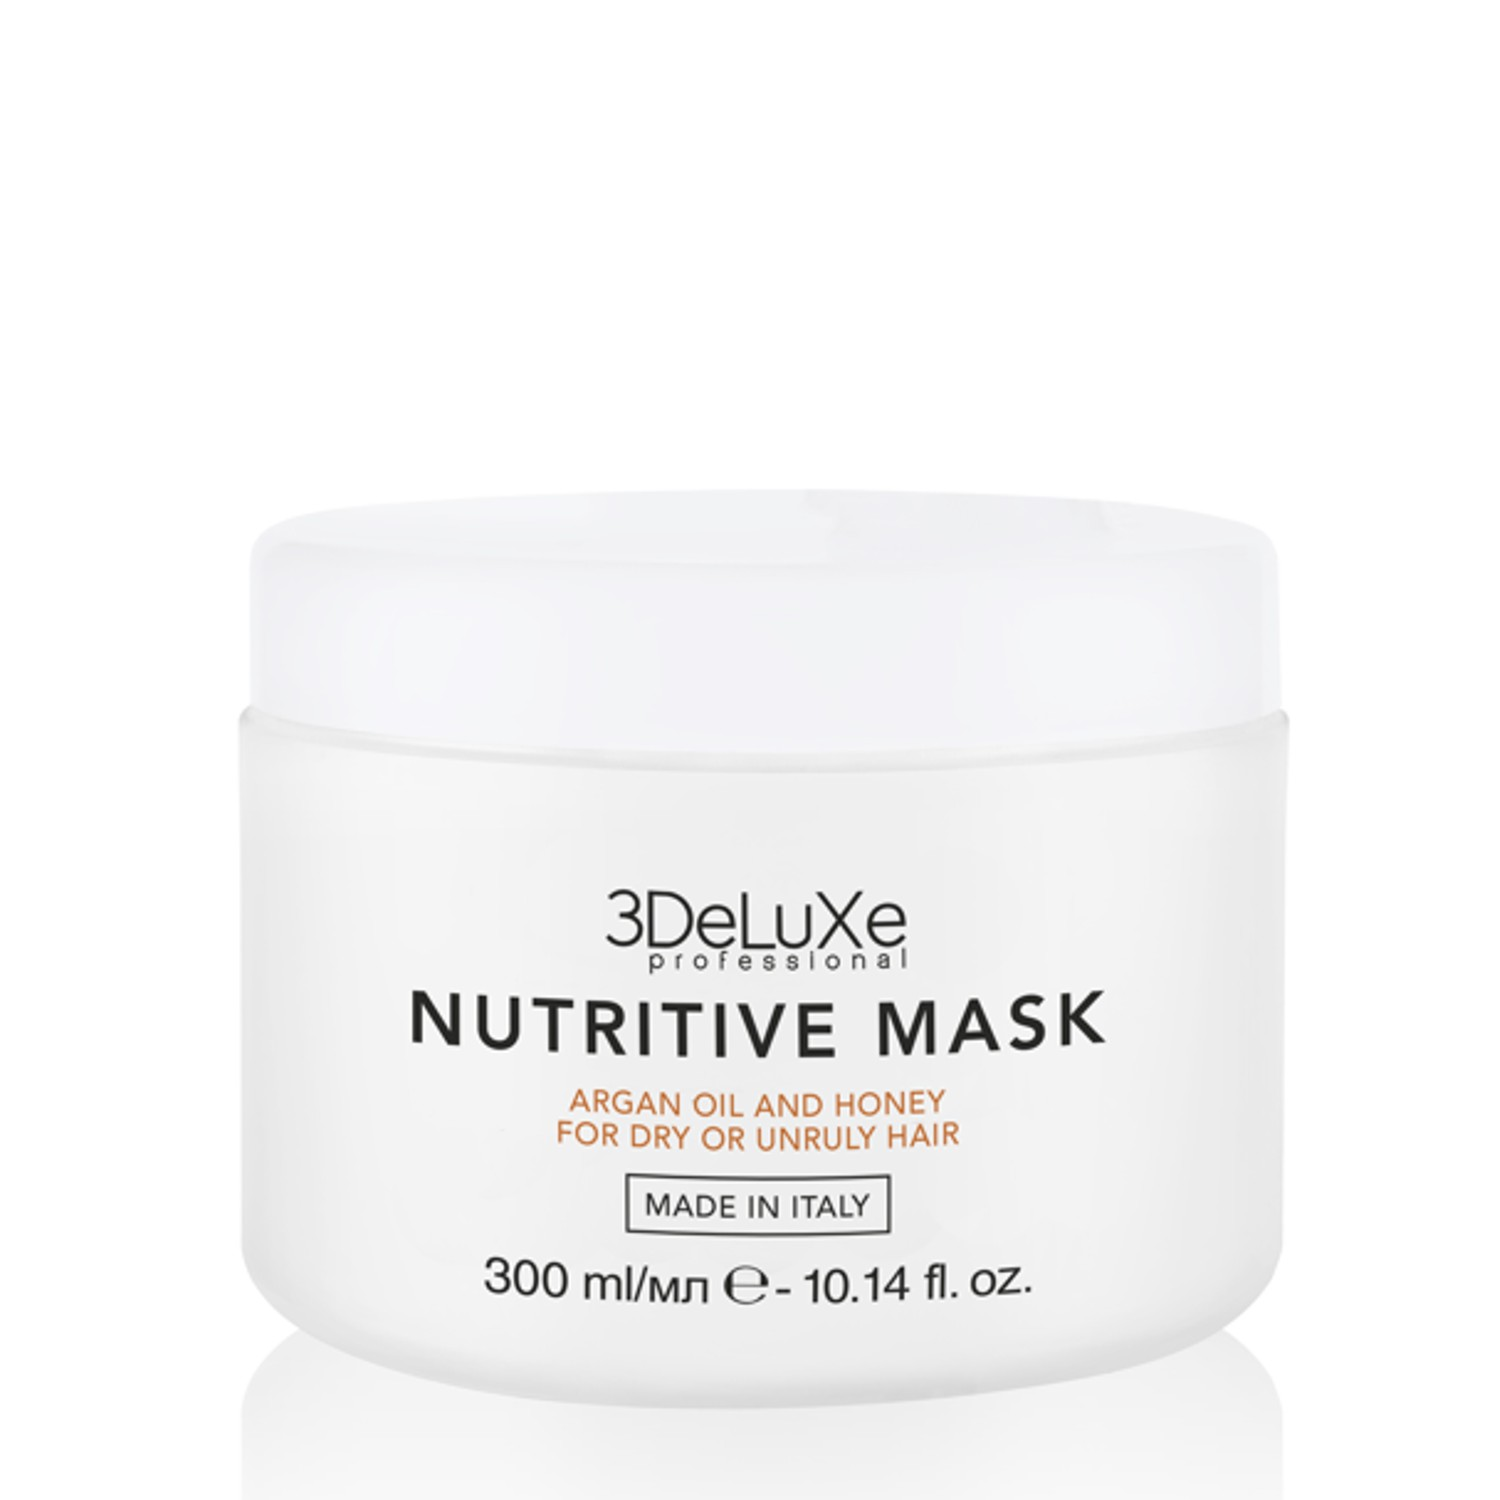 3DeLuXe Professional NUTRITIVE Mask 300 ml